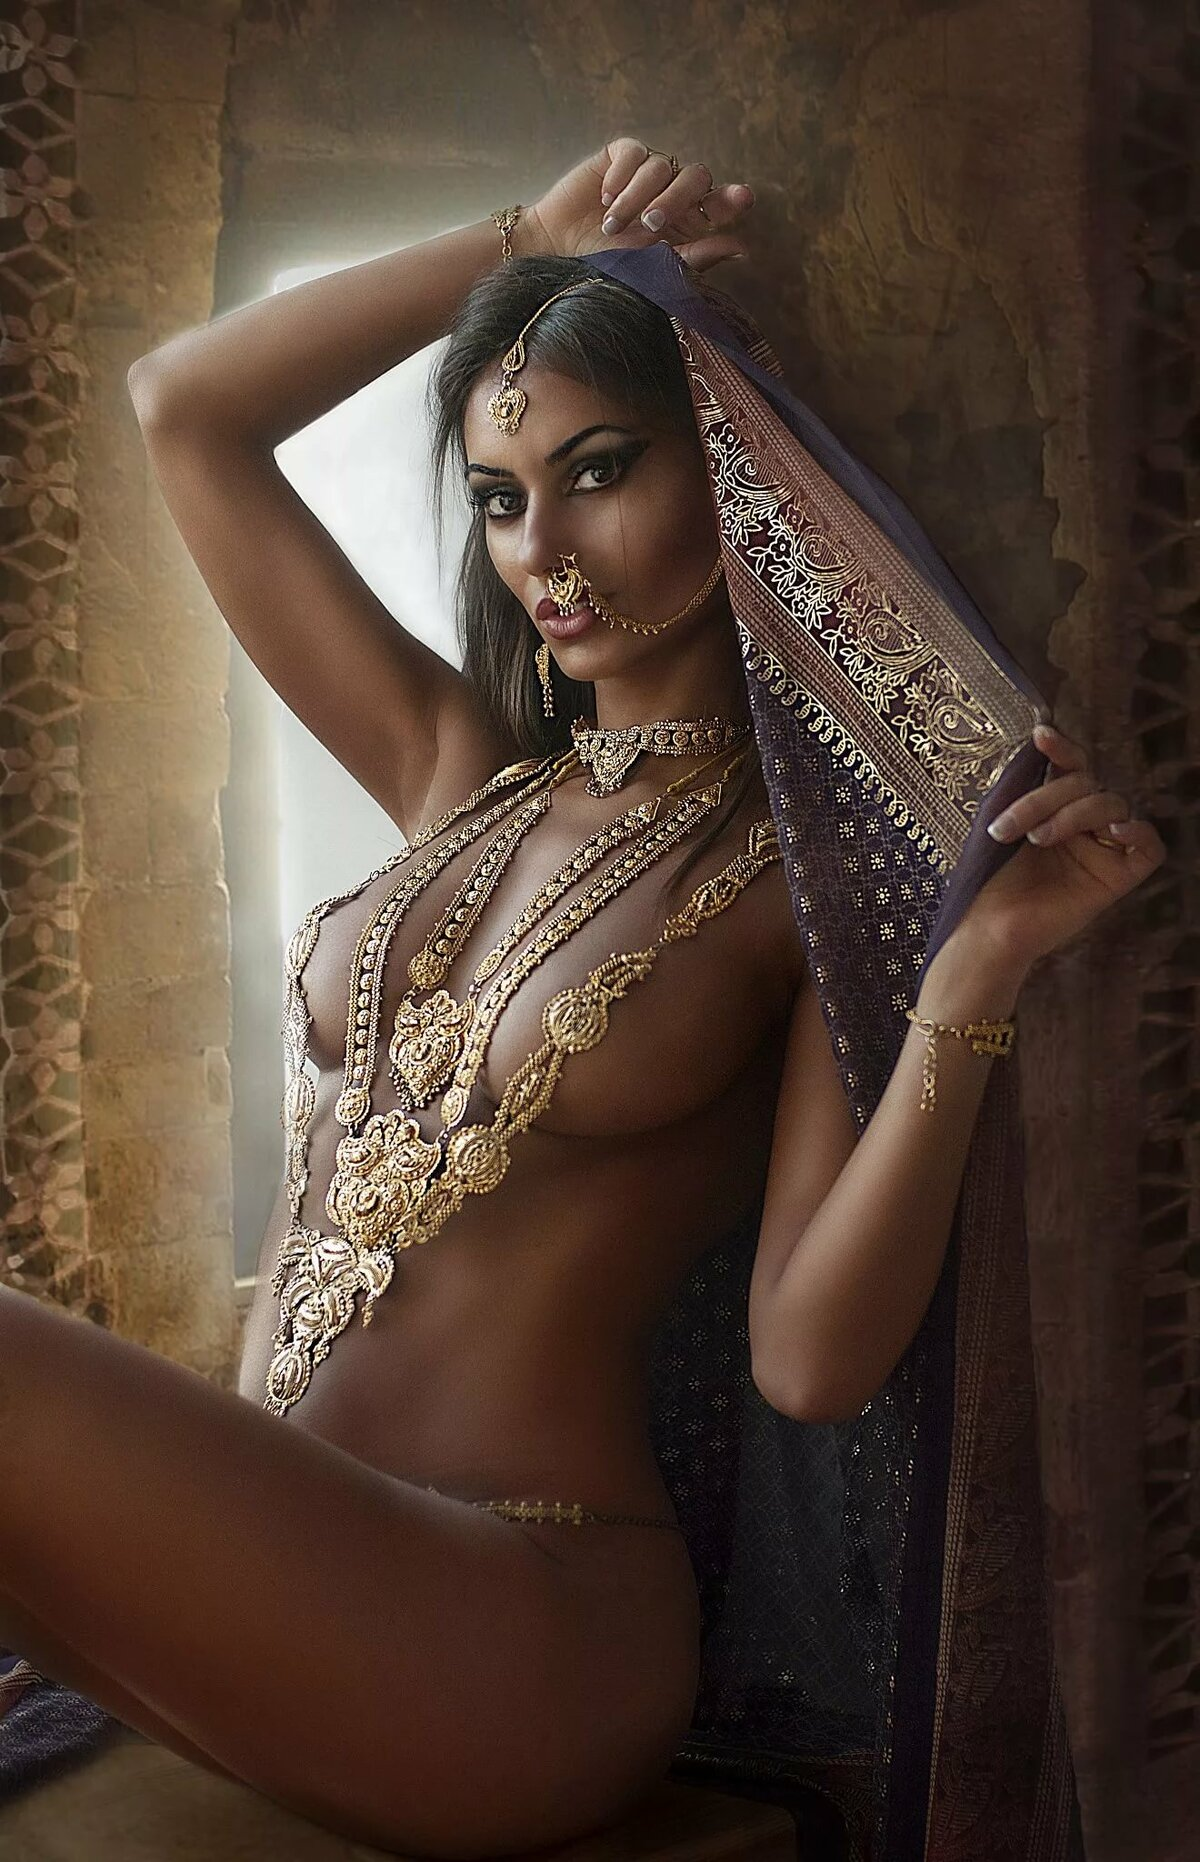 tits-sexy-indian-nude-women-high-def-mmf-mpegs